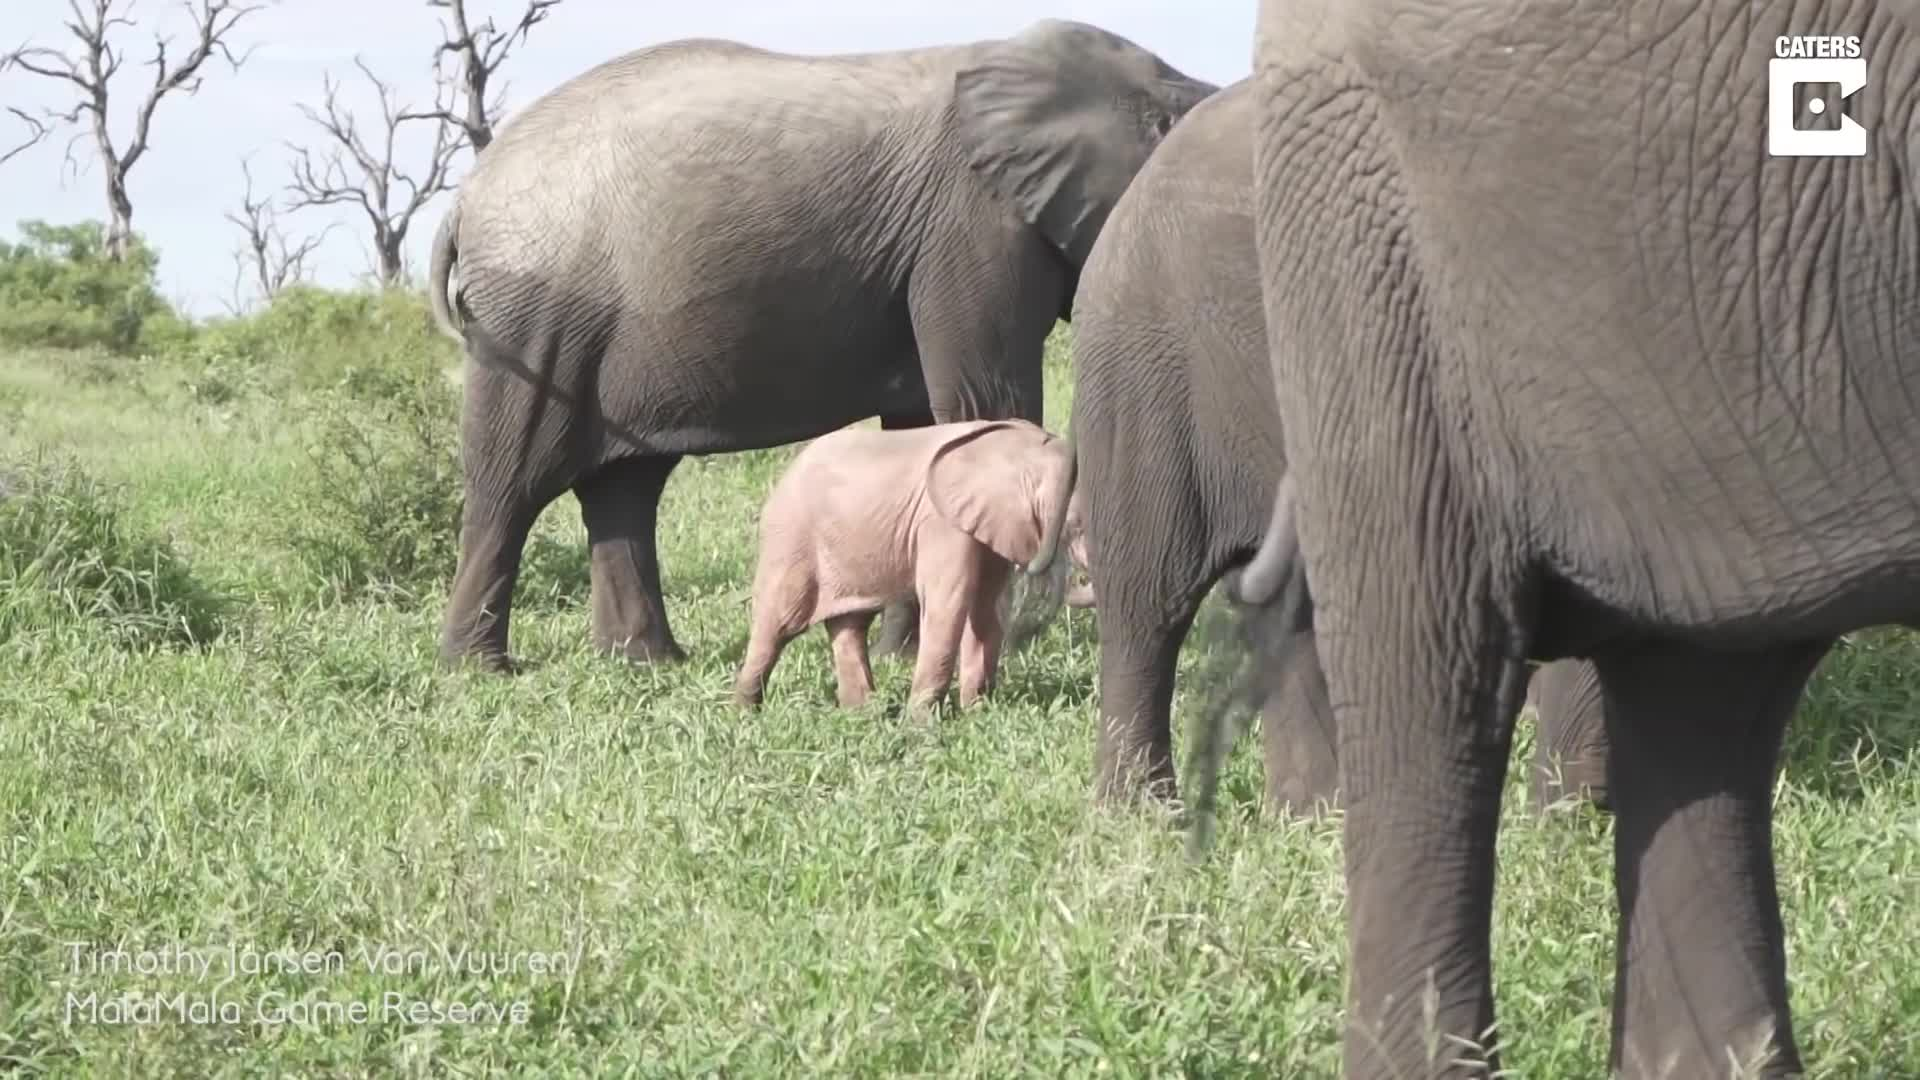 elephant, elephants, Pink Baby Elephant Spotted In Wild GIFs